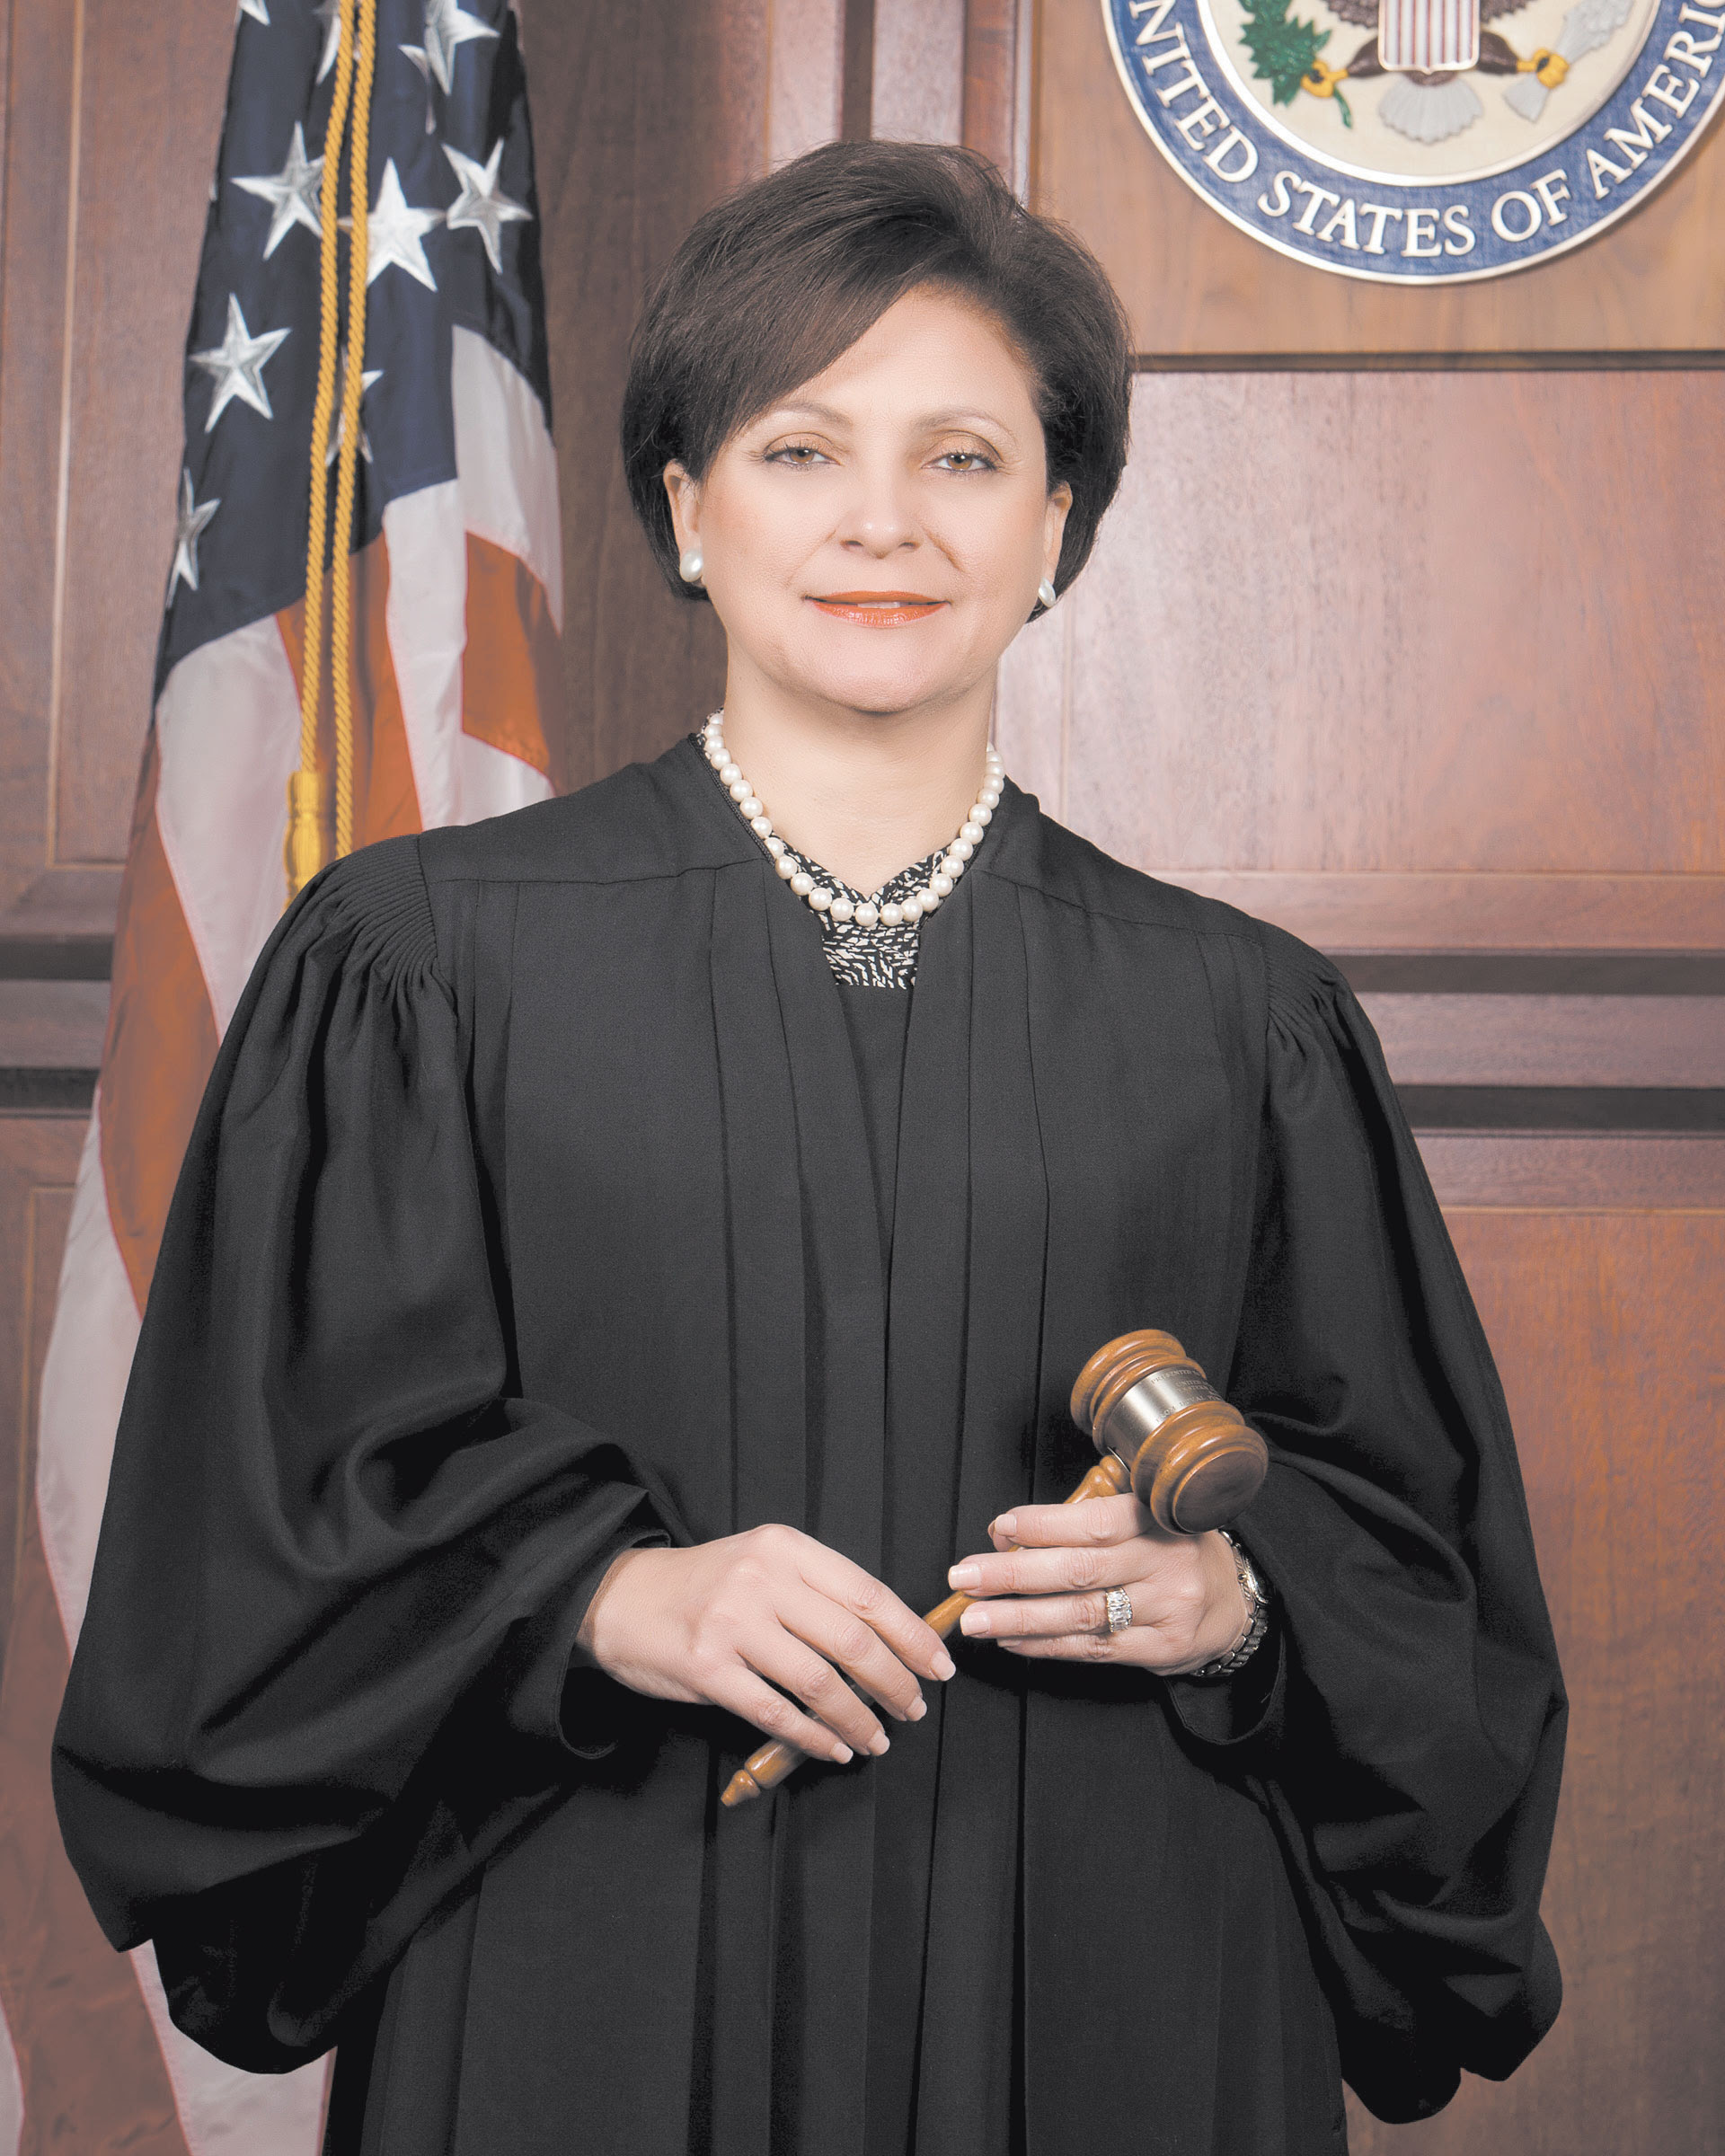 Image result for Black federal judge